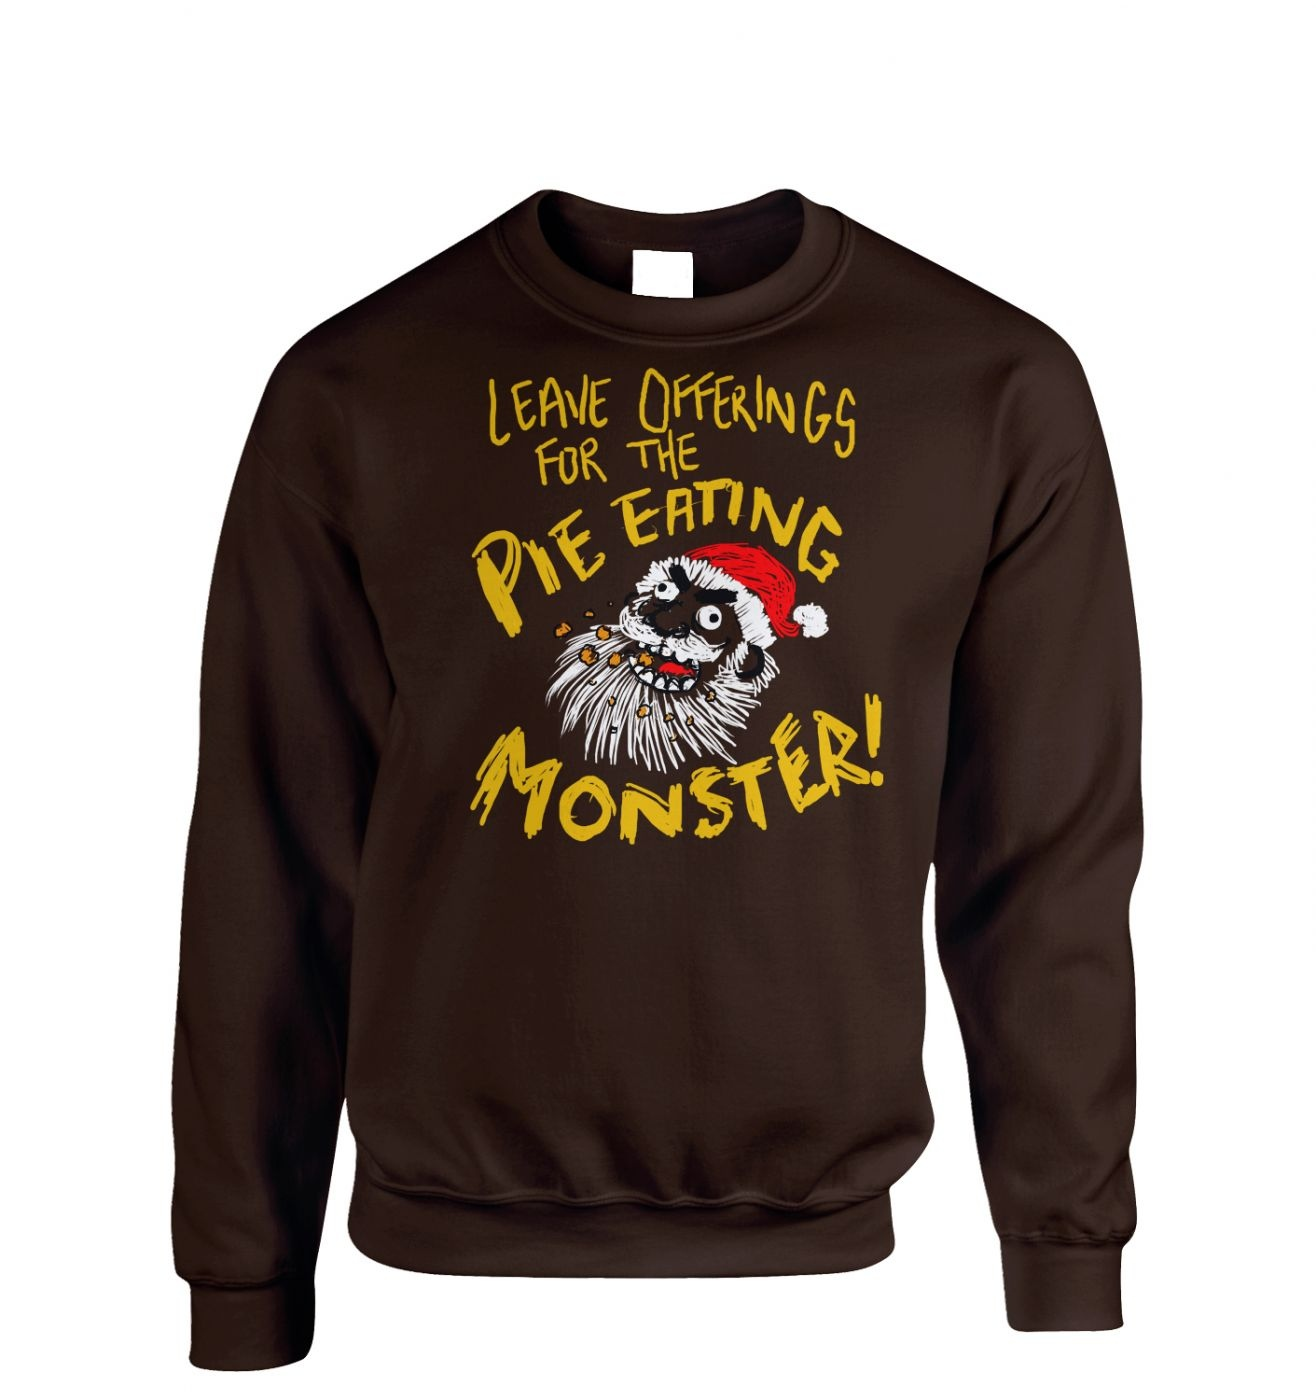 Pie Monster Adult Crewneck Sweatshirt